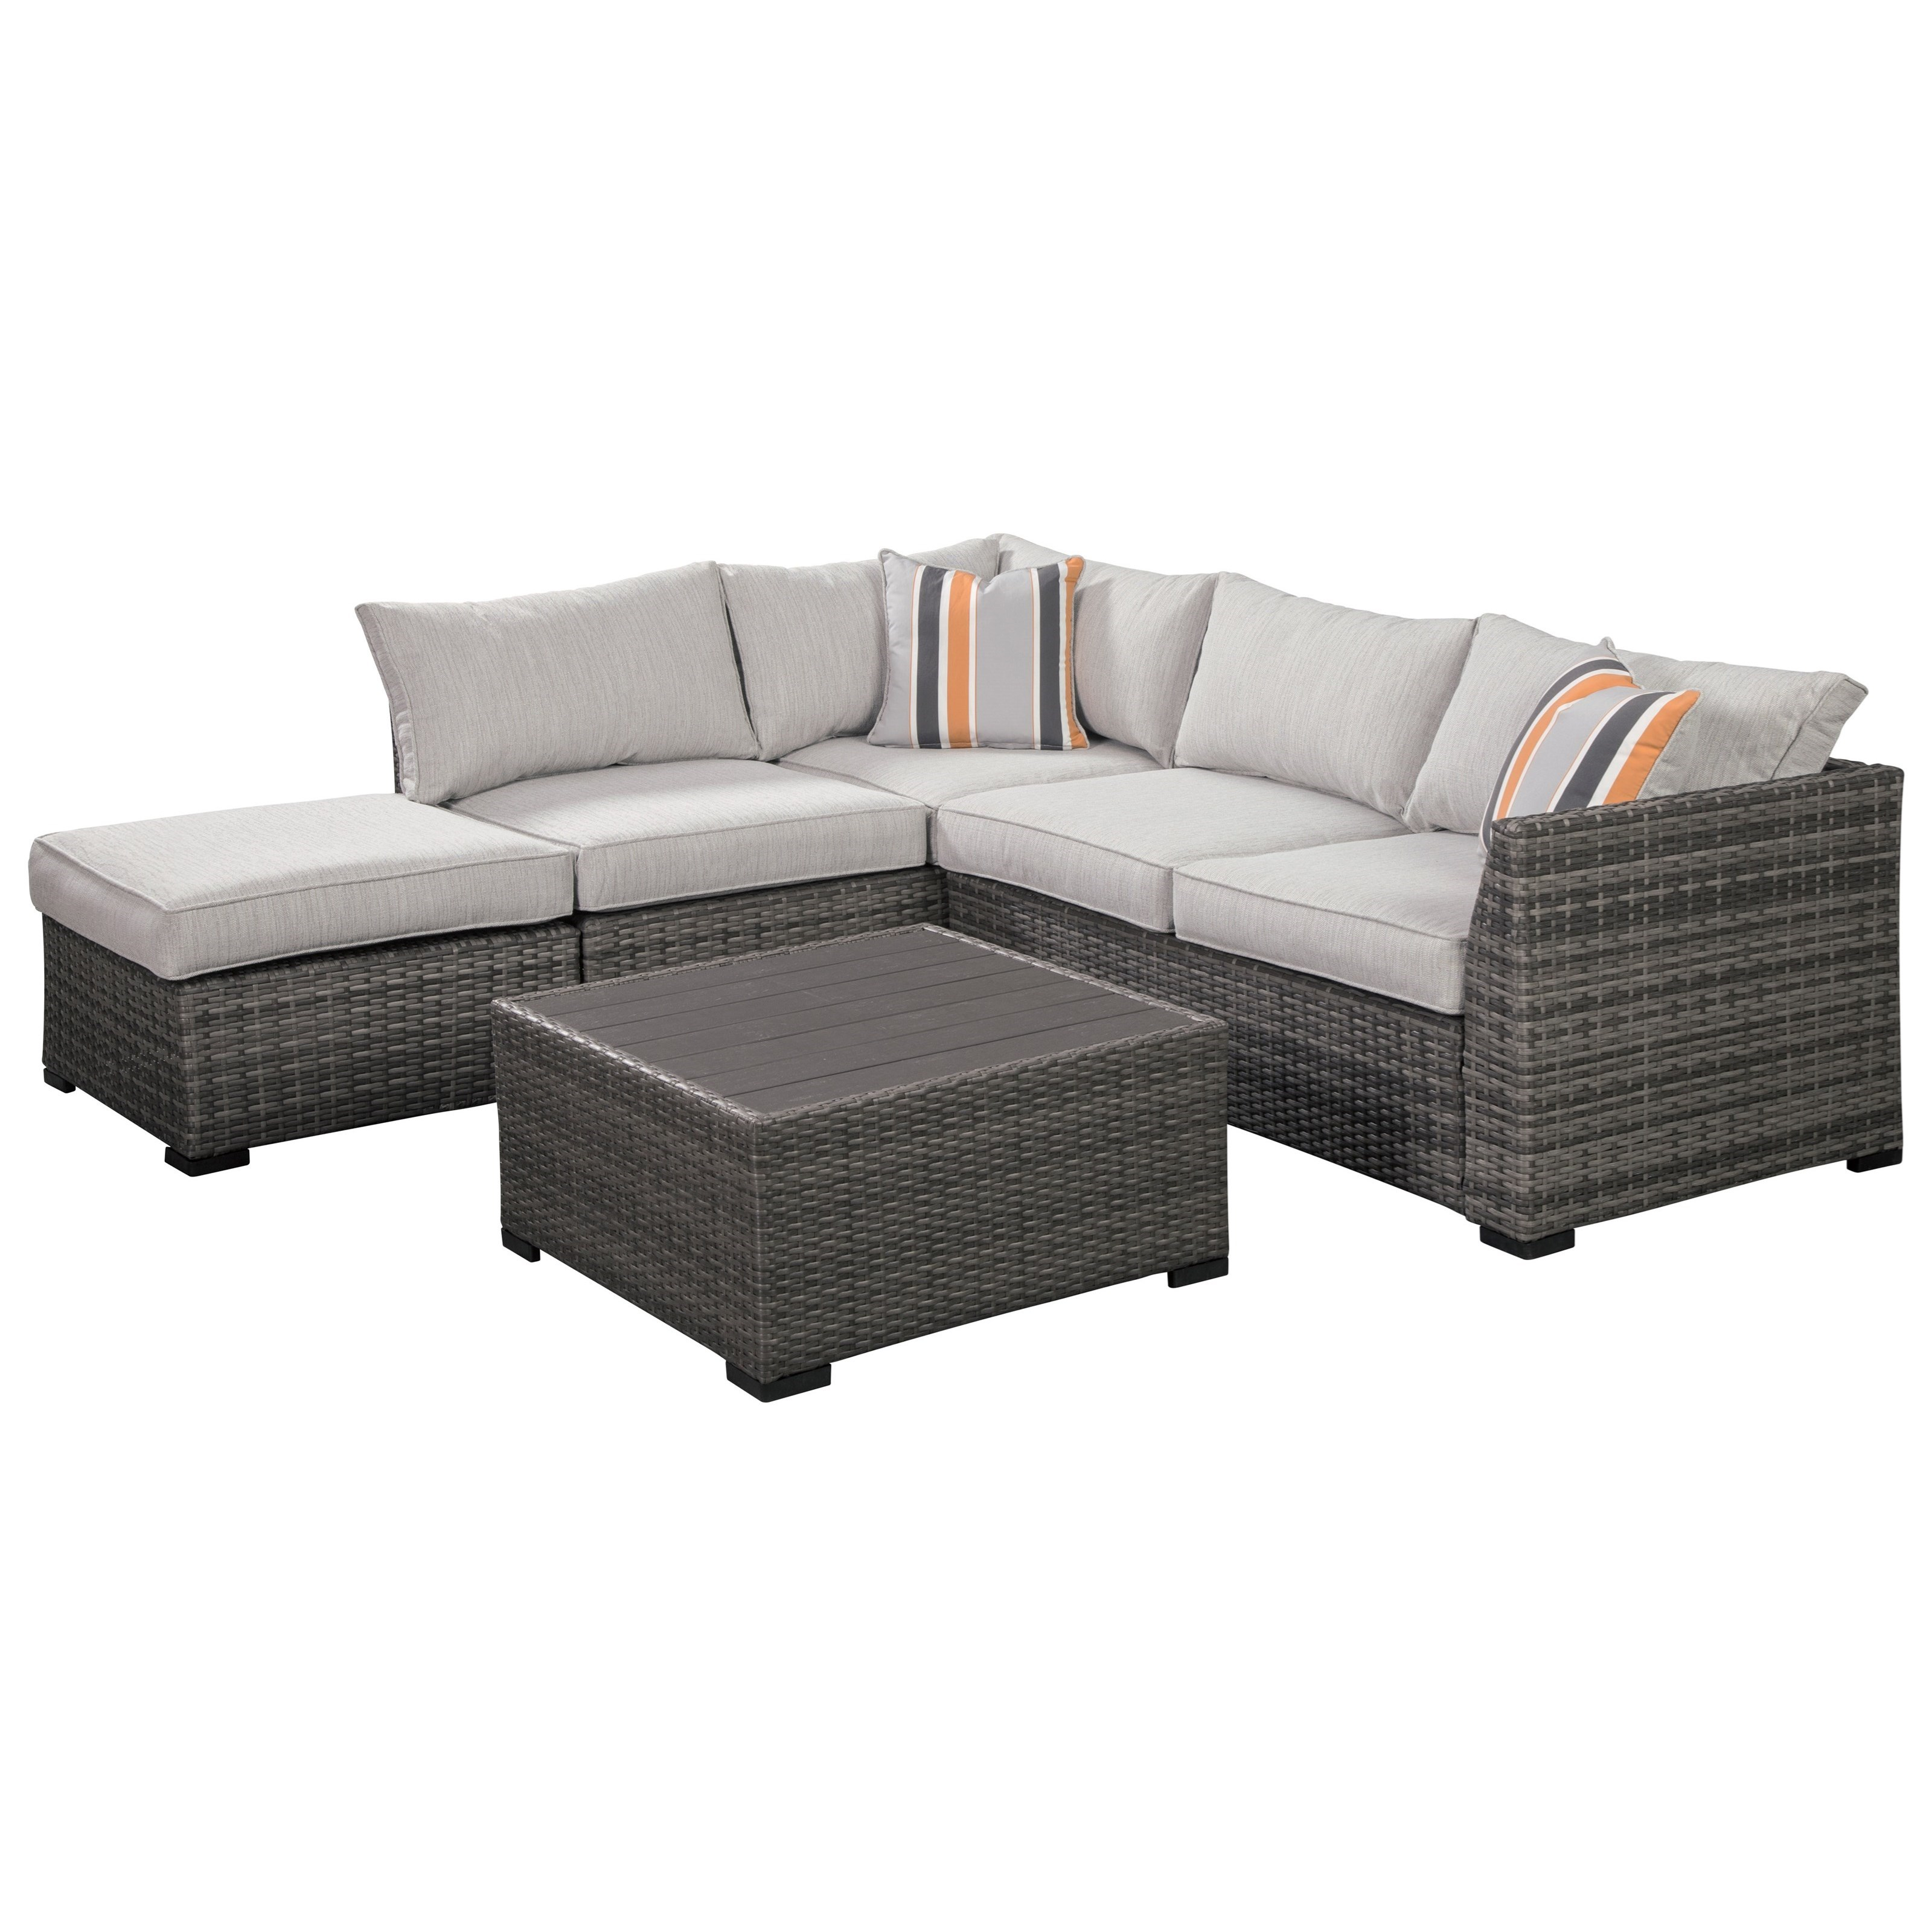 Cherry Point Outdoor Sectional Set by Signature Design by Ashley at Northeast Factory Direct